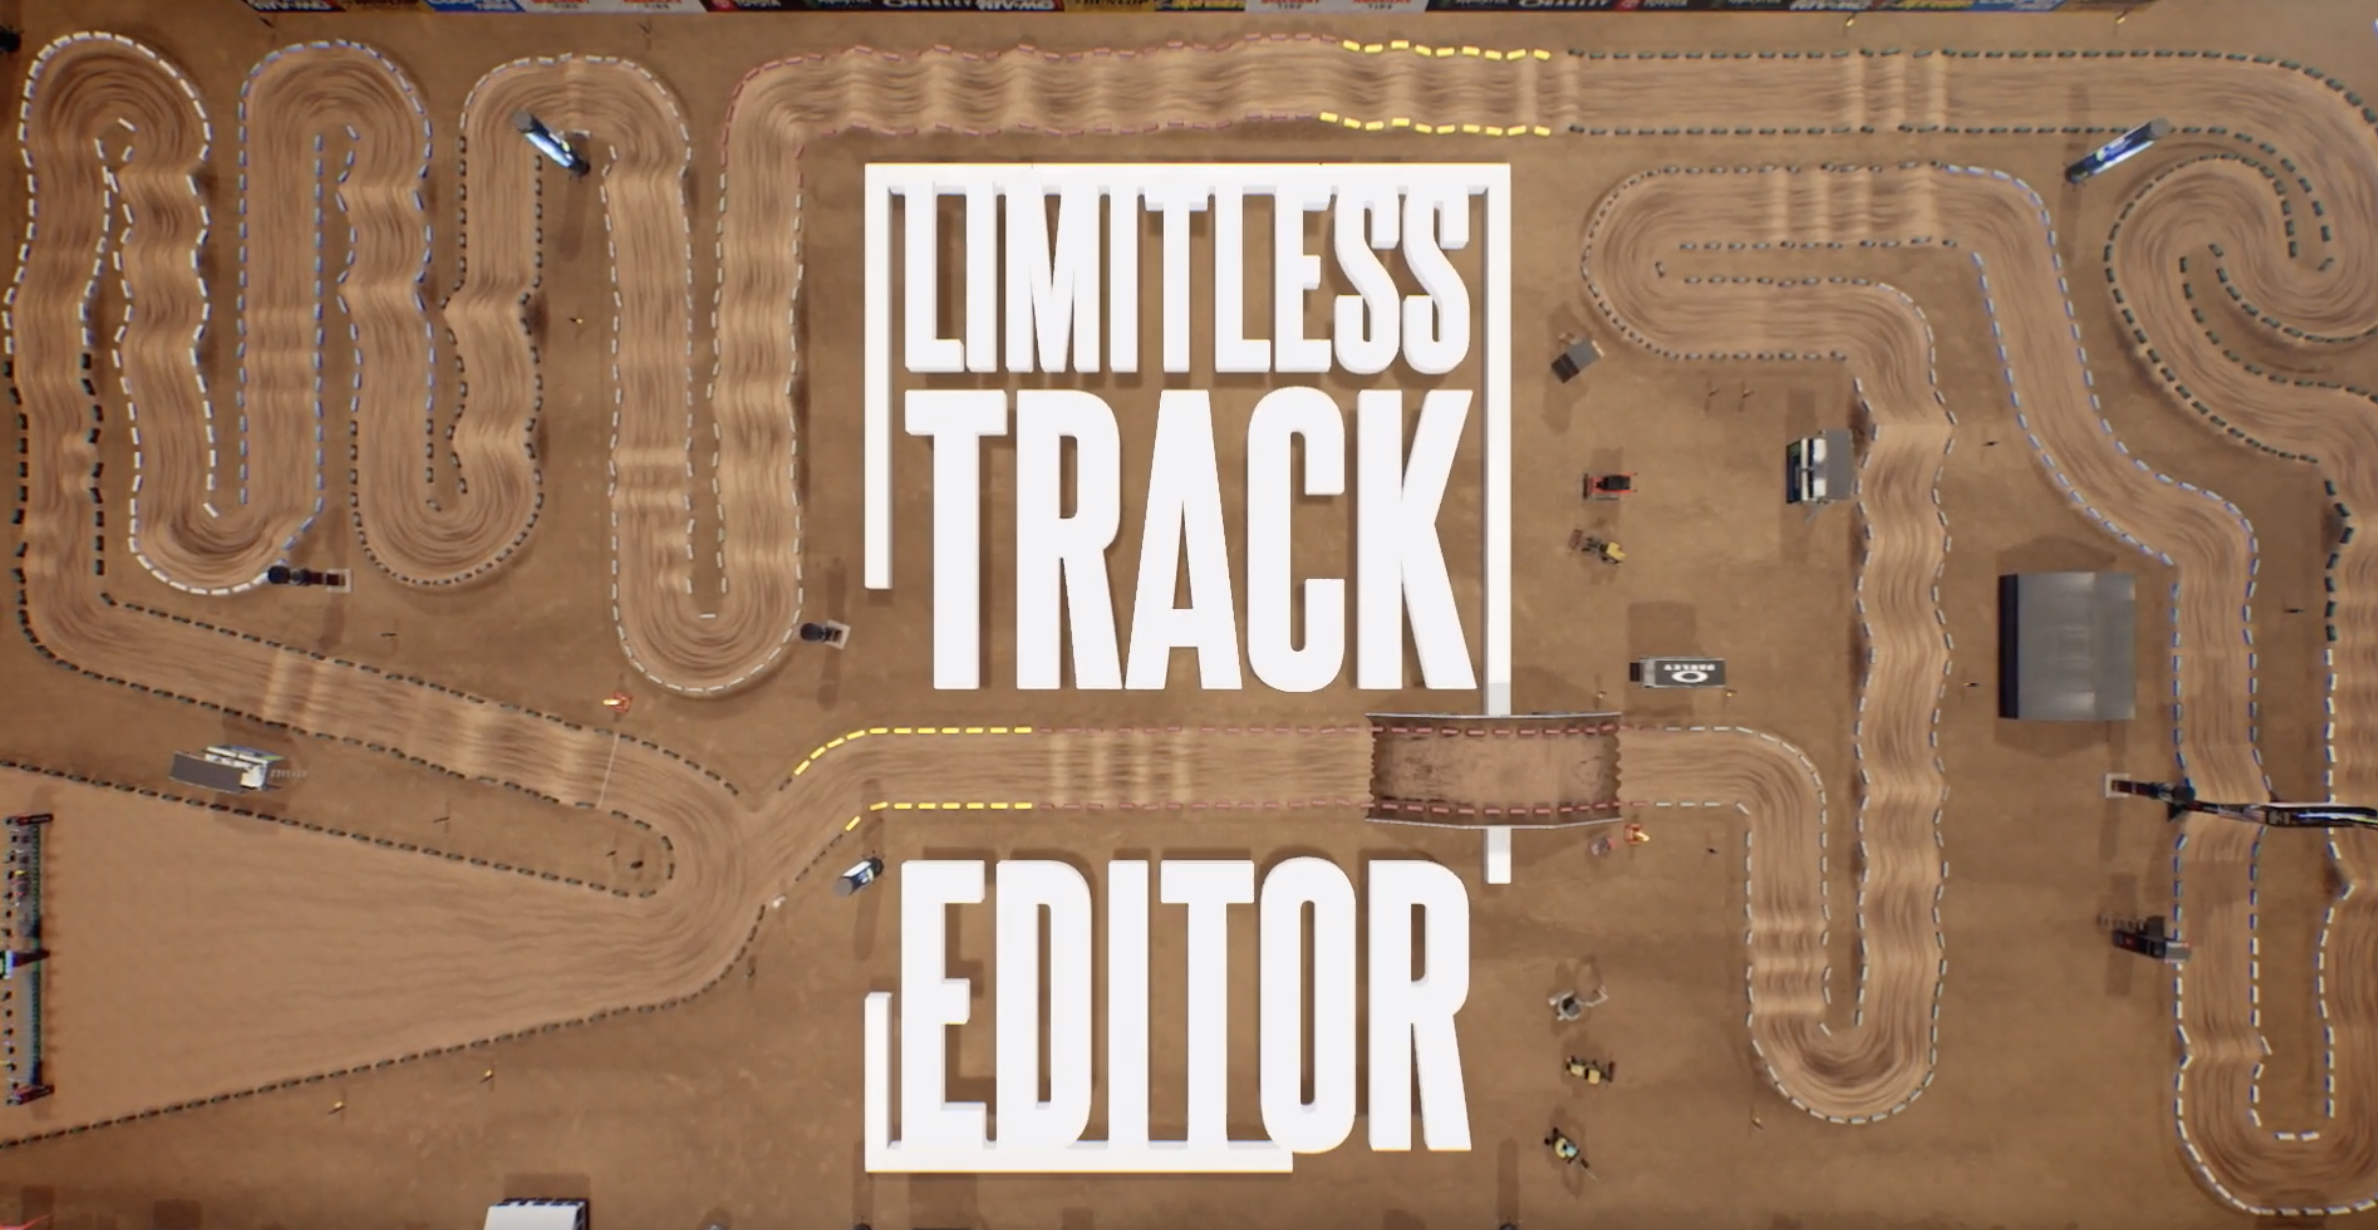 Limitless Track Editor